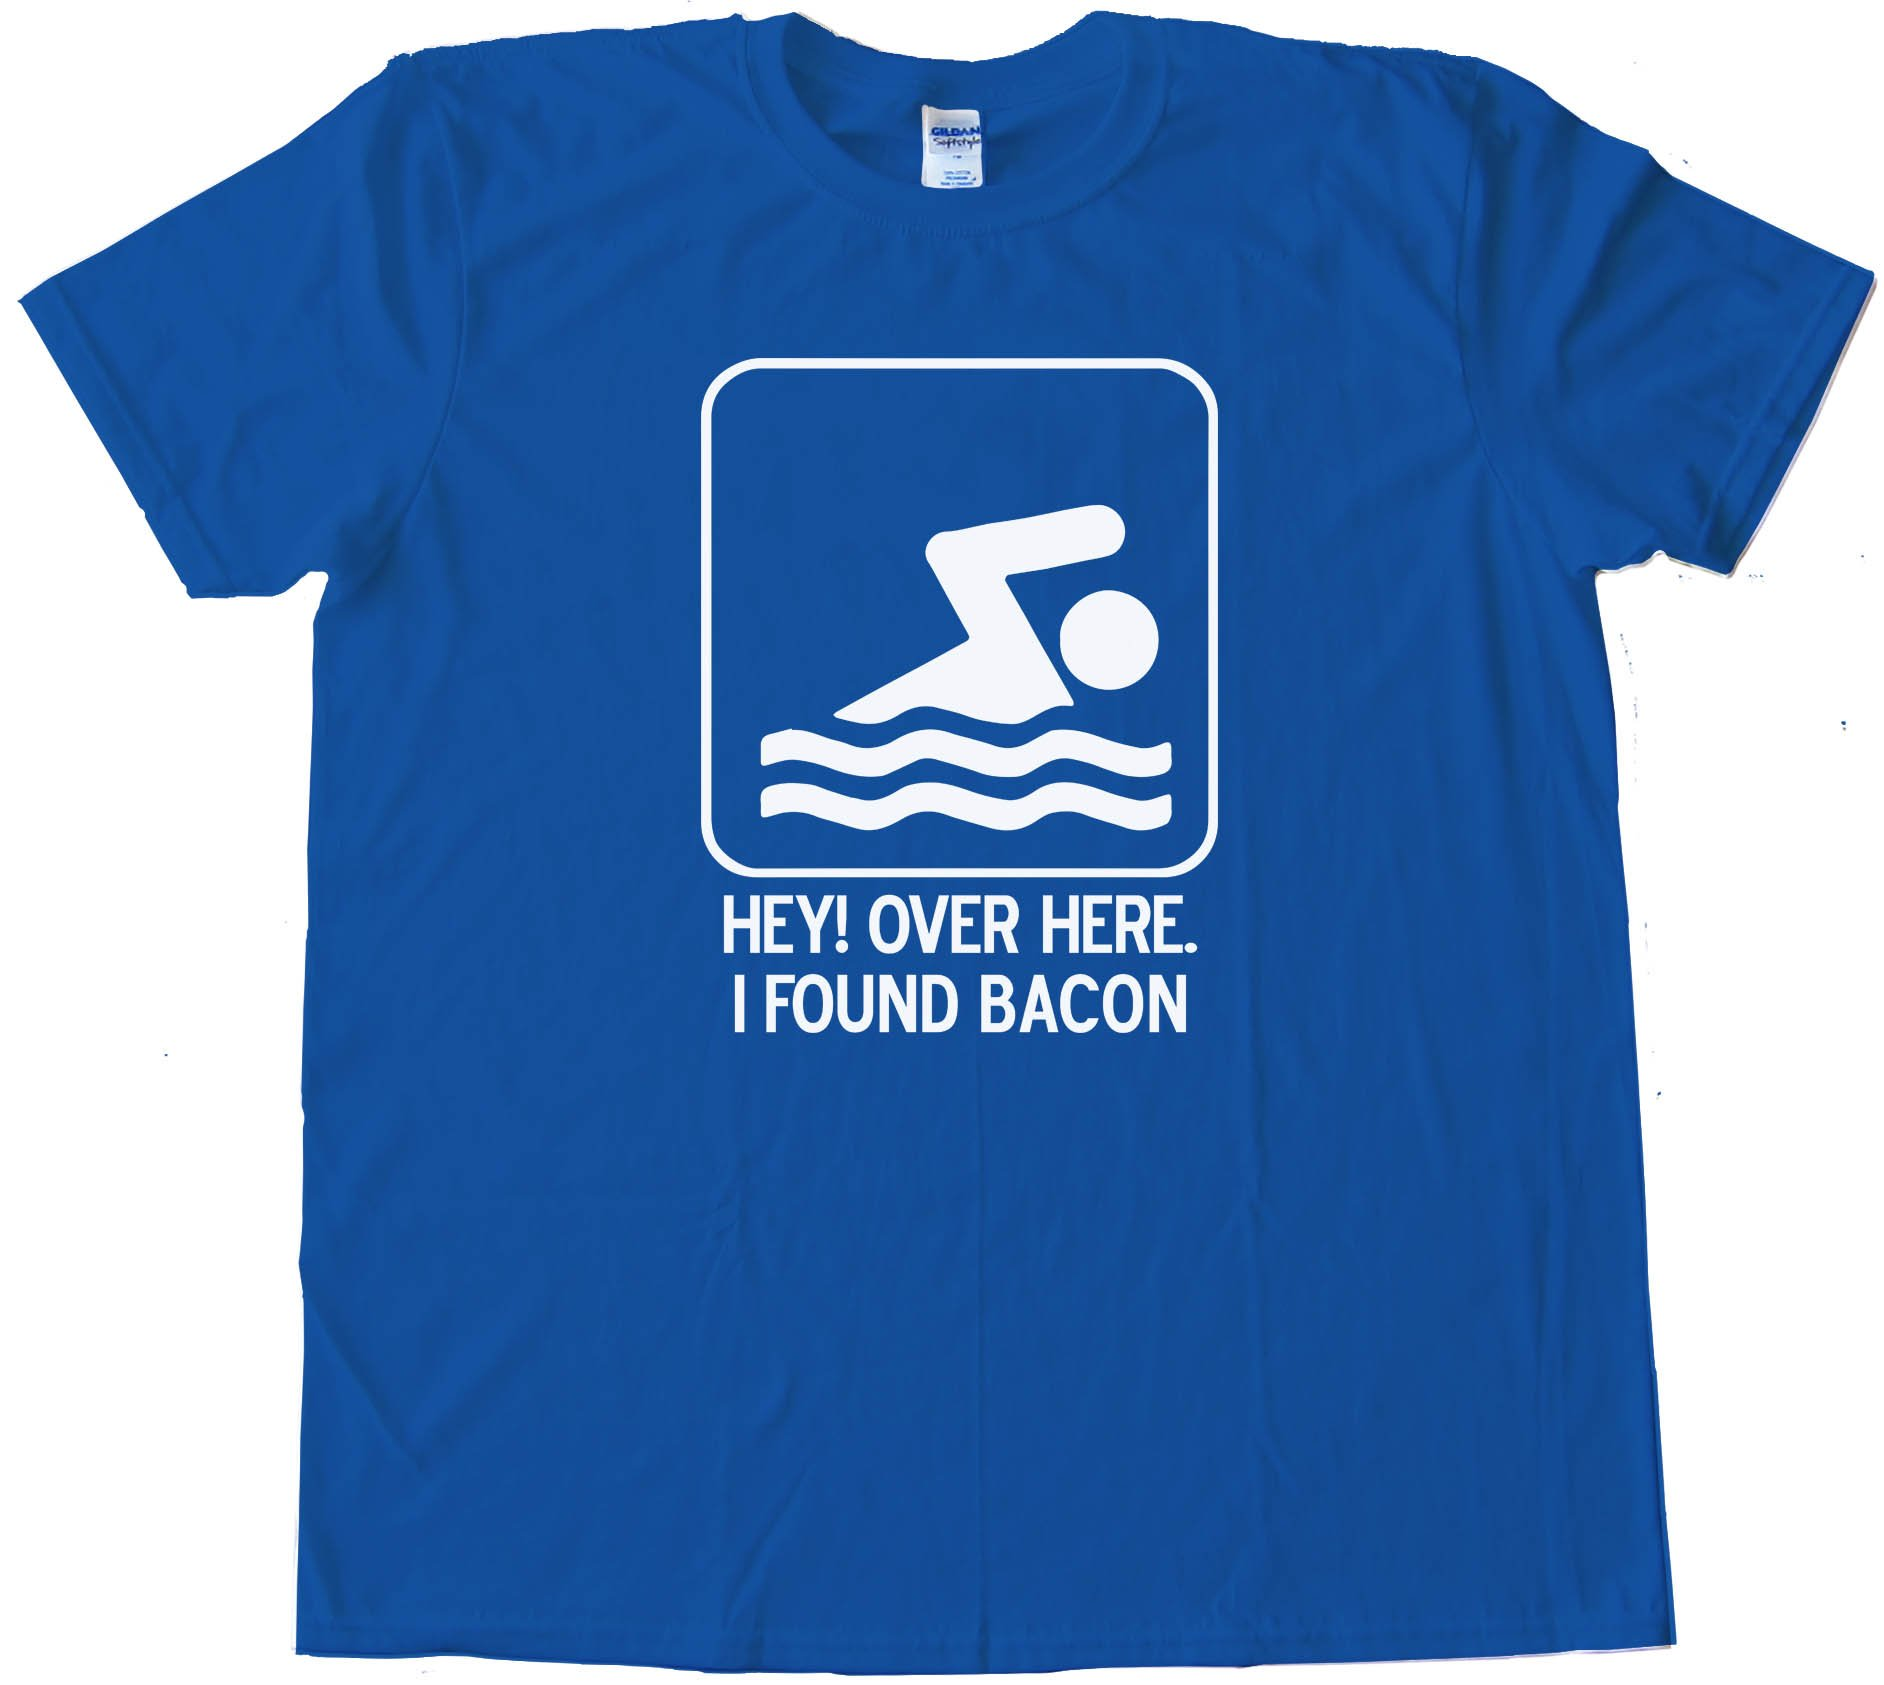 Hey Over Here - I Found Bacon - Tee Shirt